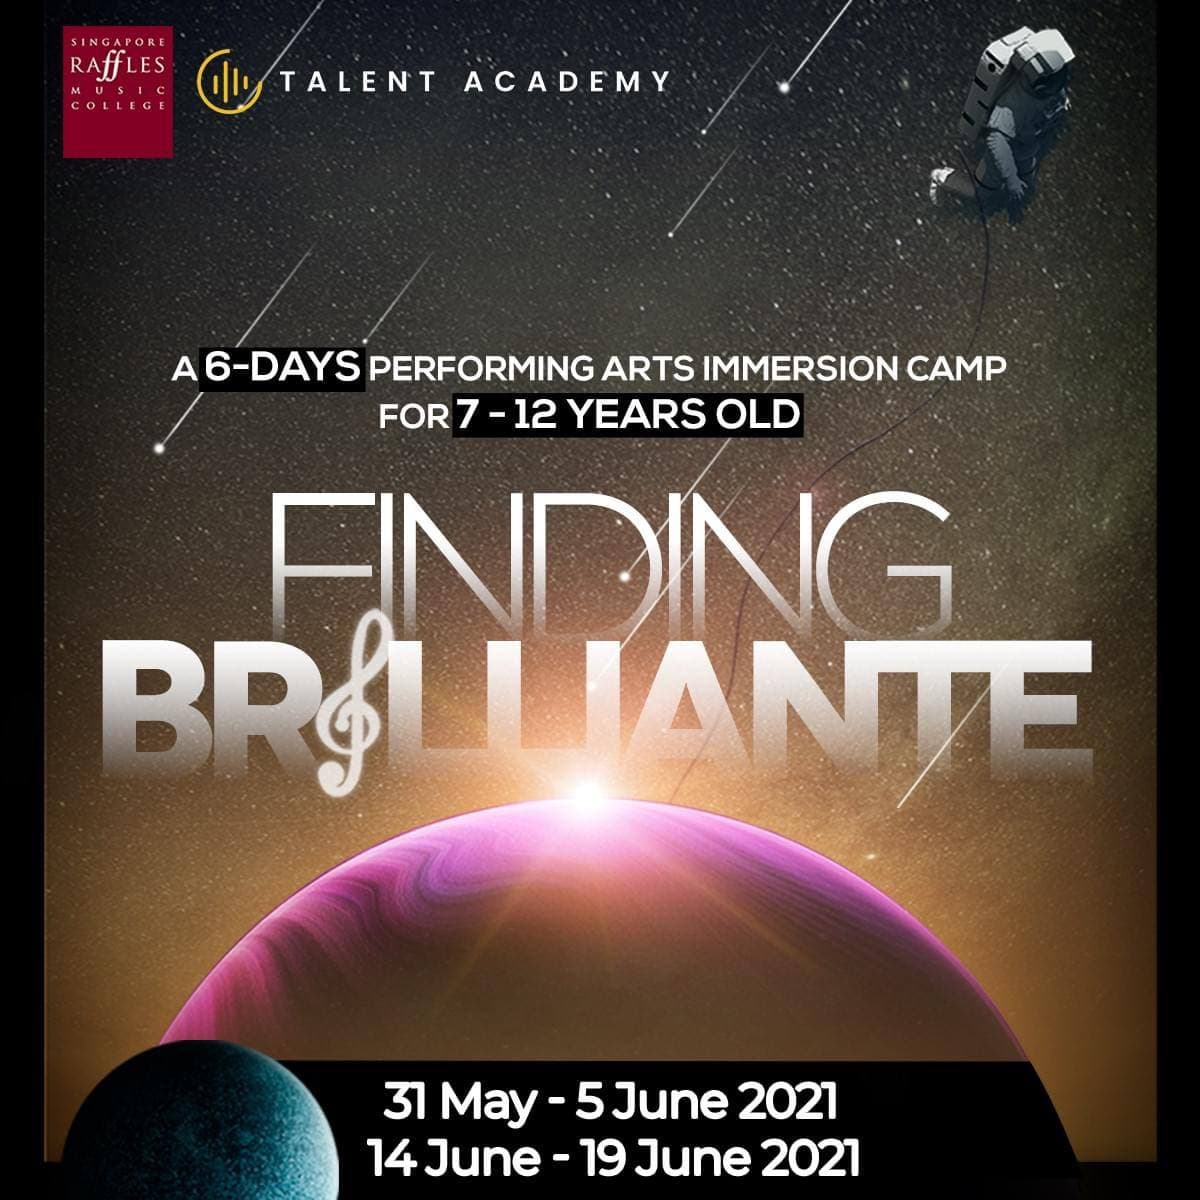 Sign up for Finding Brillante: 6-day Performing Arts Immersion Camp for your Child